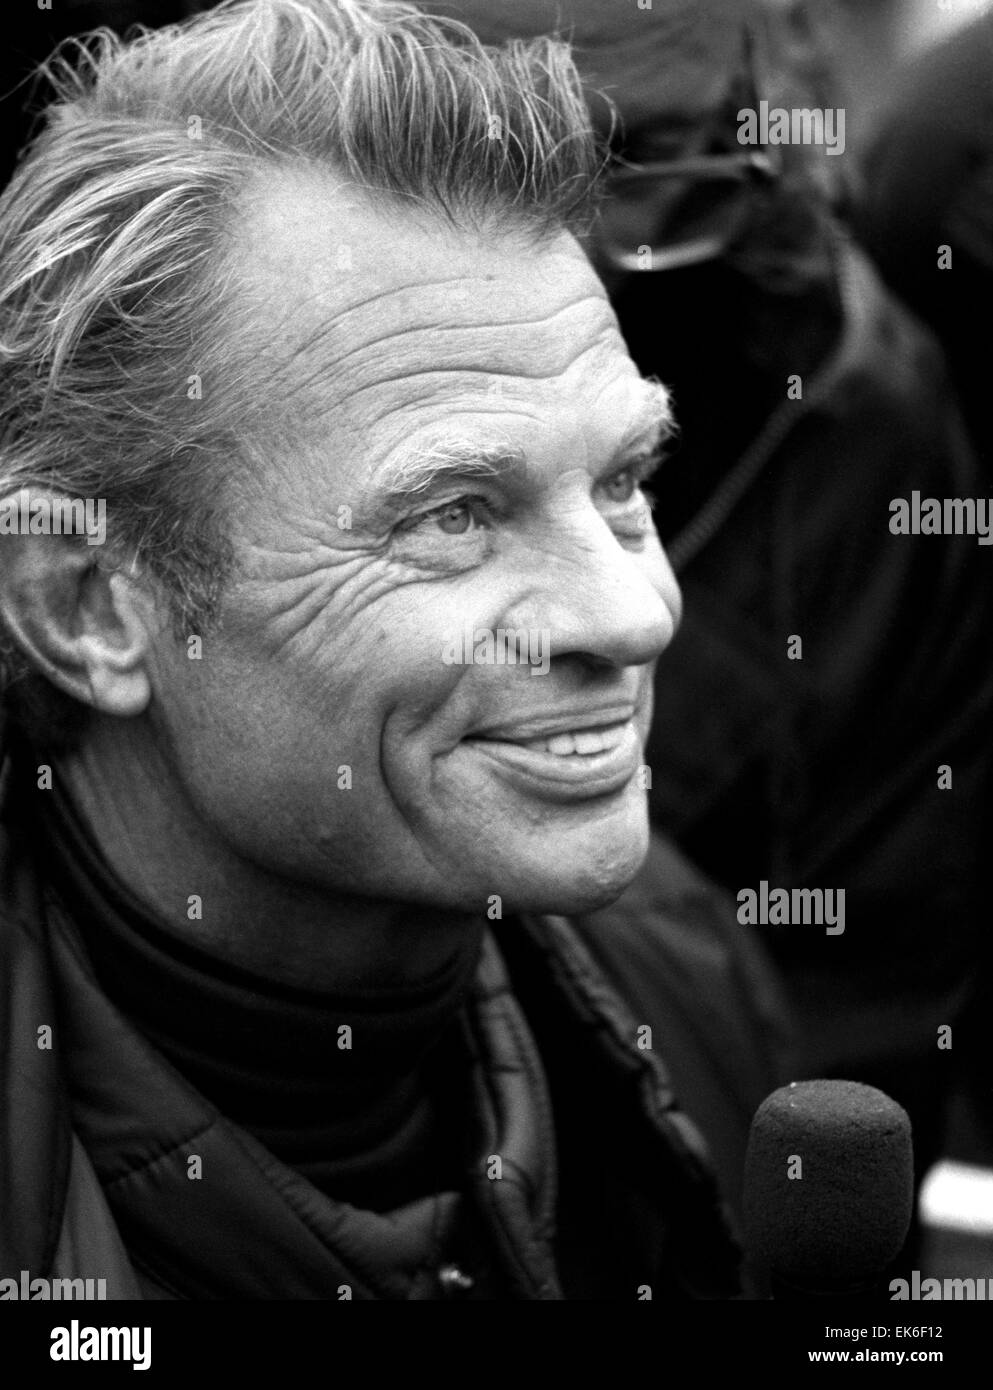 AJAXNETPHOTO. - 29TH MARCH, 1982. GOSPORT, ENGLAND. - WHITBREAD WORLD RACE  - OVERALL WINNER FLYER SKIPPER CORNELIS - Stock Image